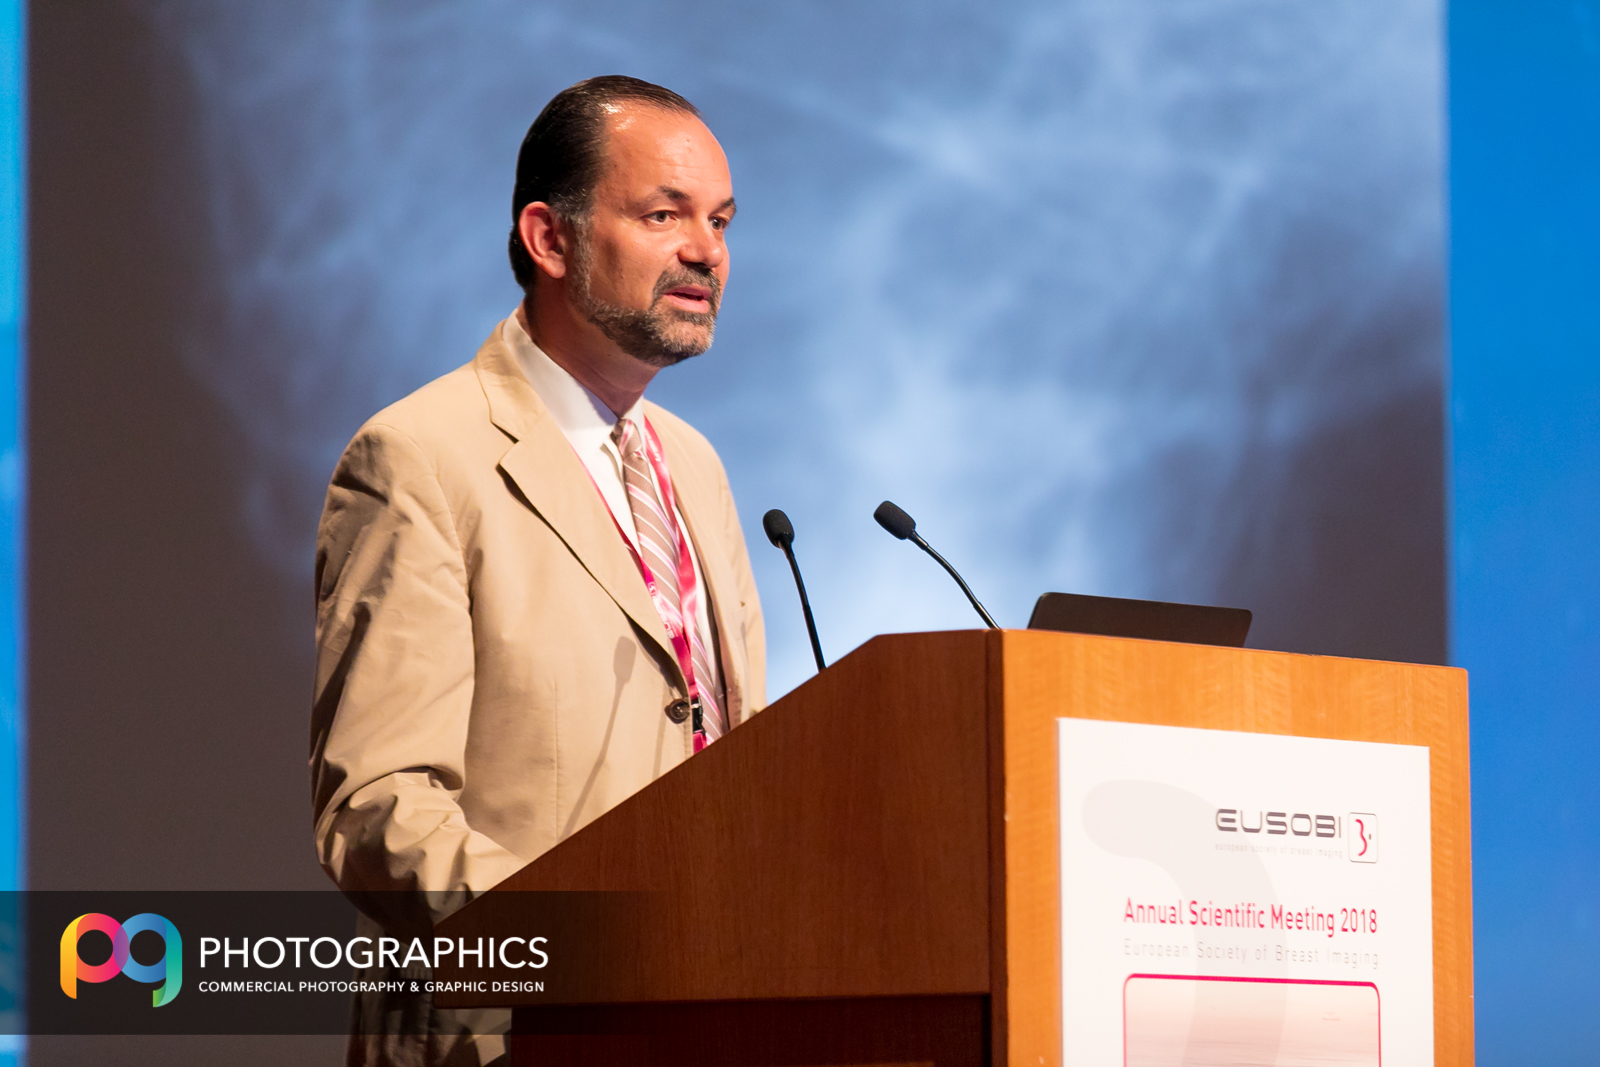 Conference-event-photography-glasgow-edinburgh-athens-6.jpg